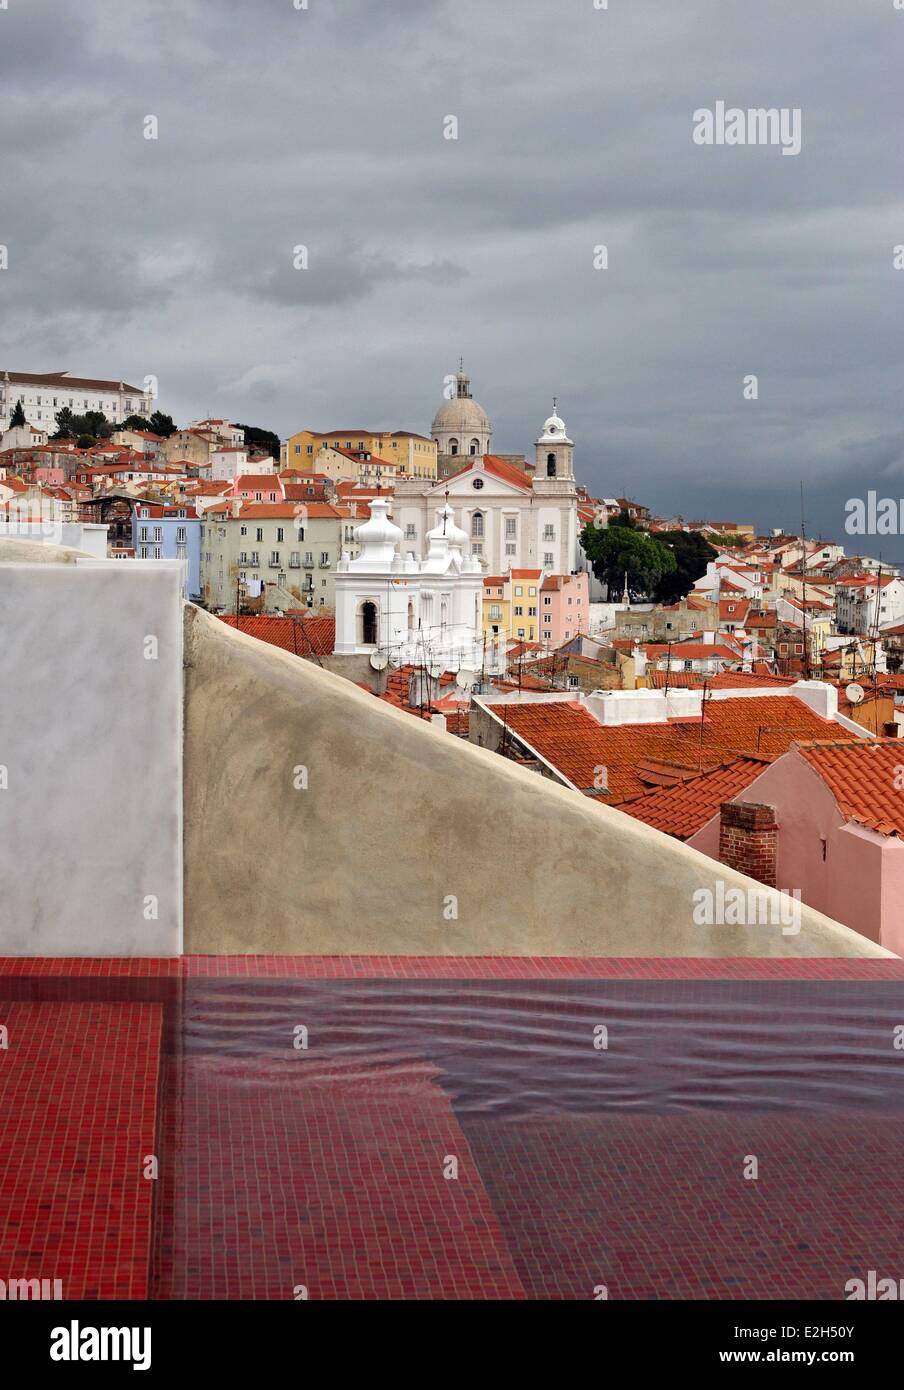 Old hotel portugal stock photos old hotel portugal stock - Hotels in lisbon portugal with swimming pool ...